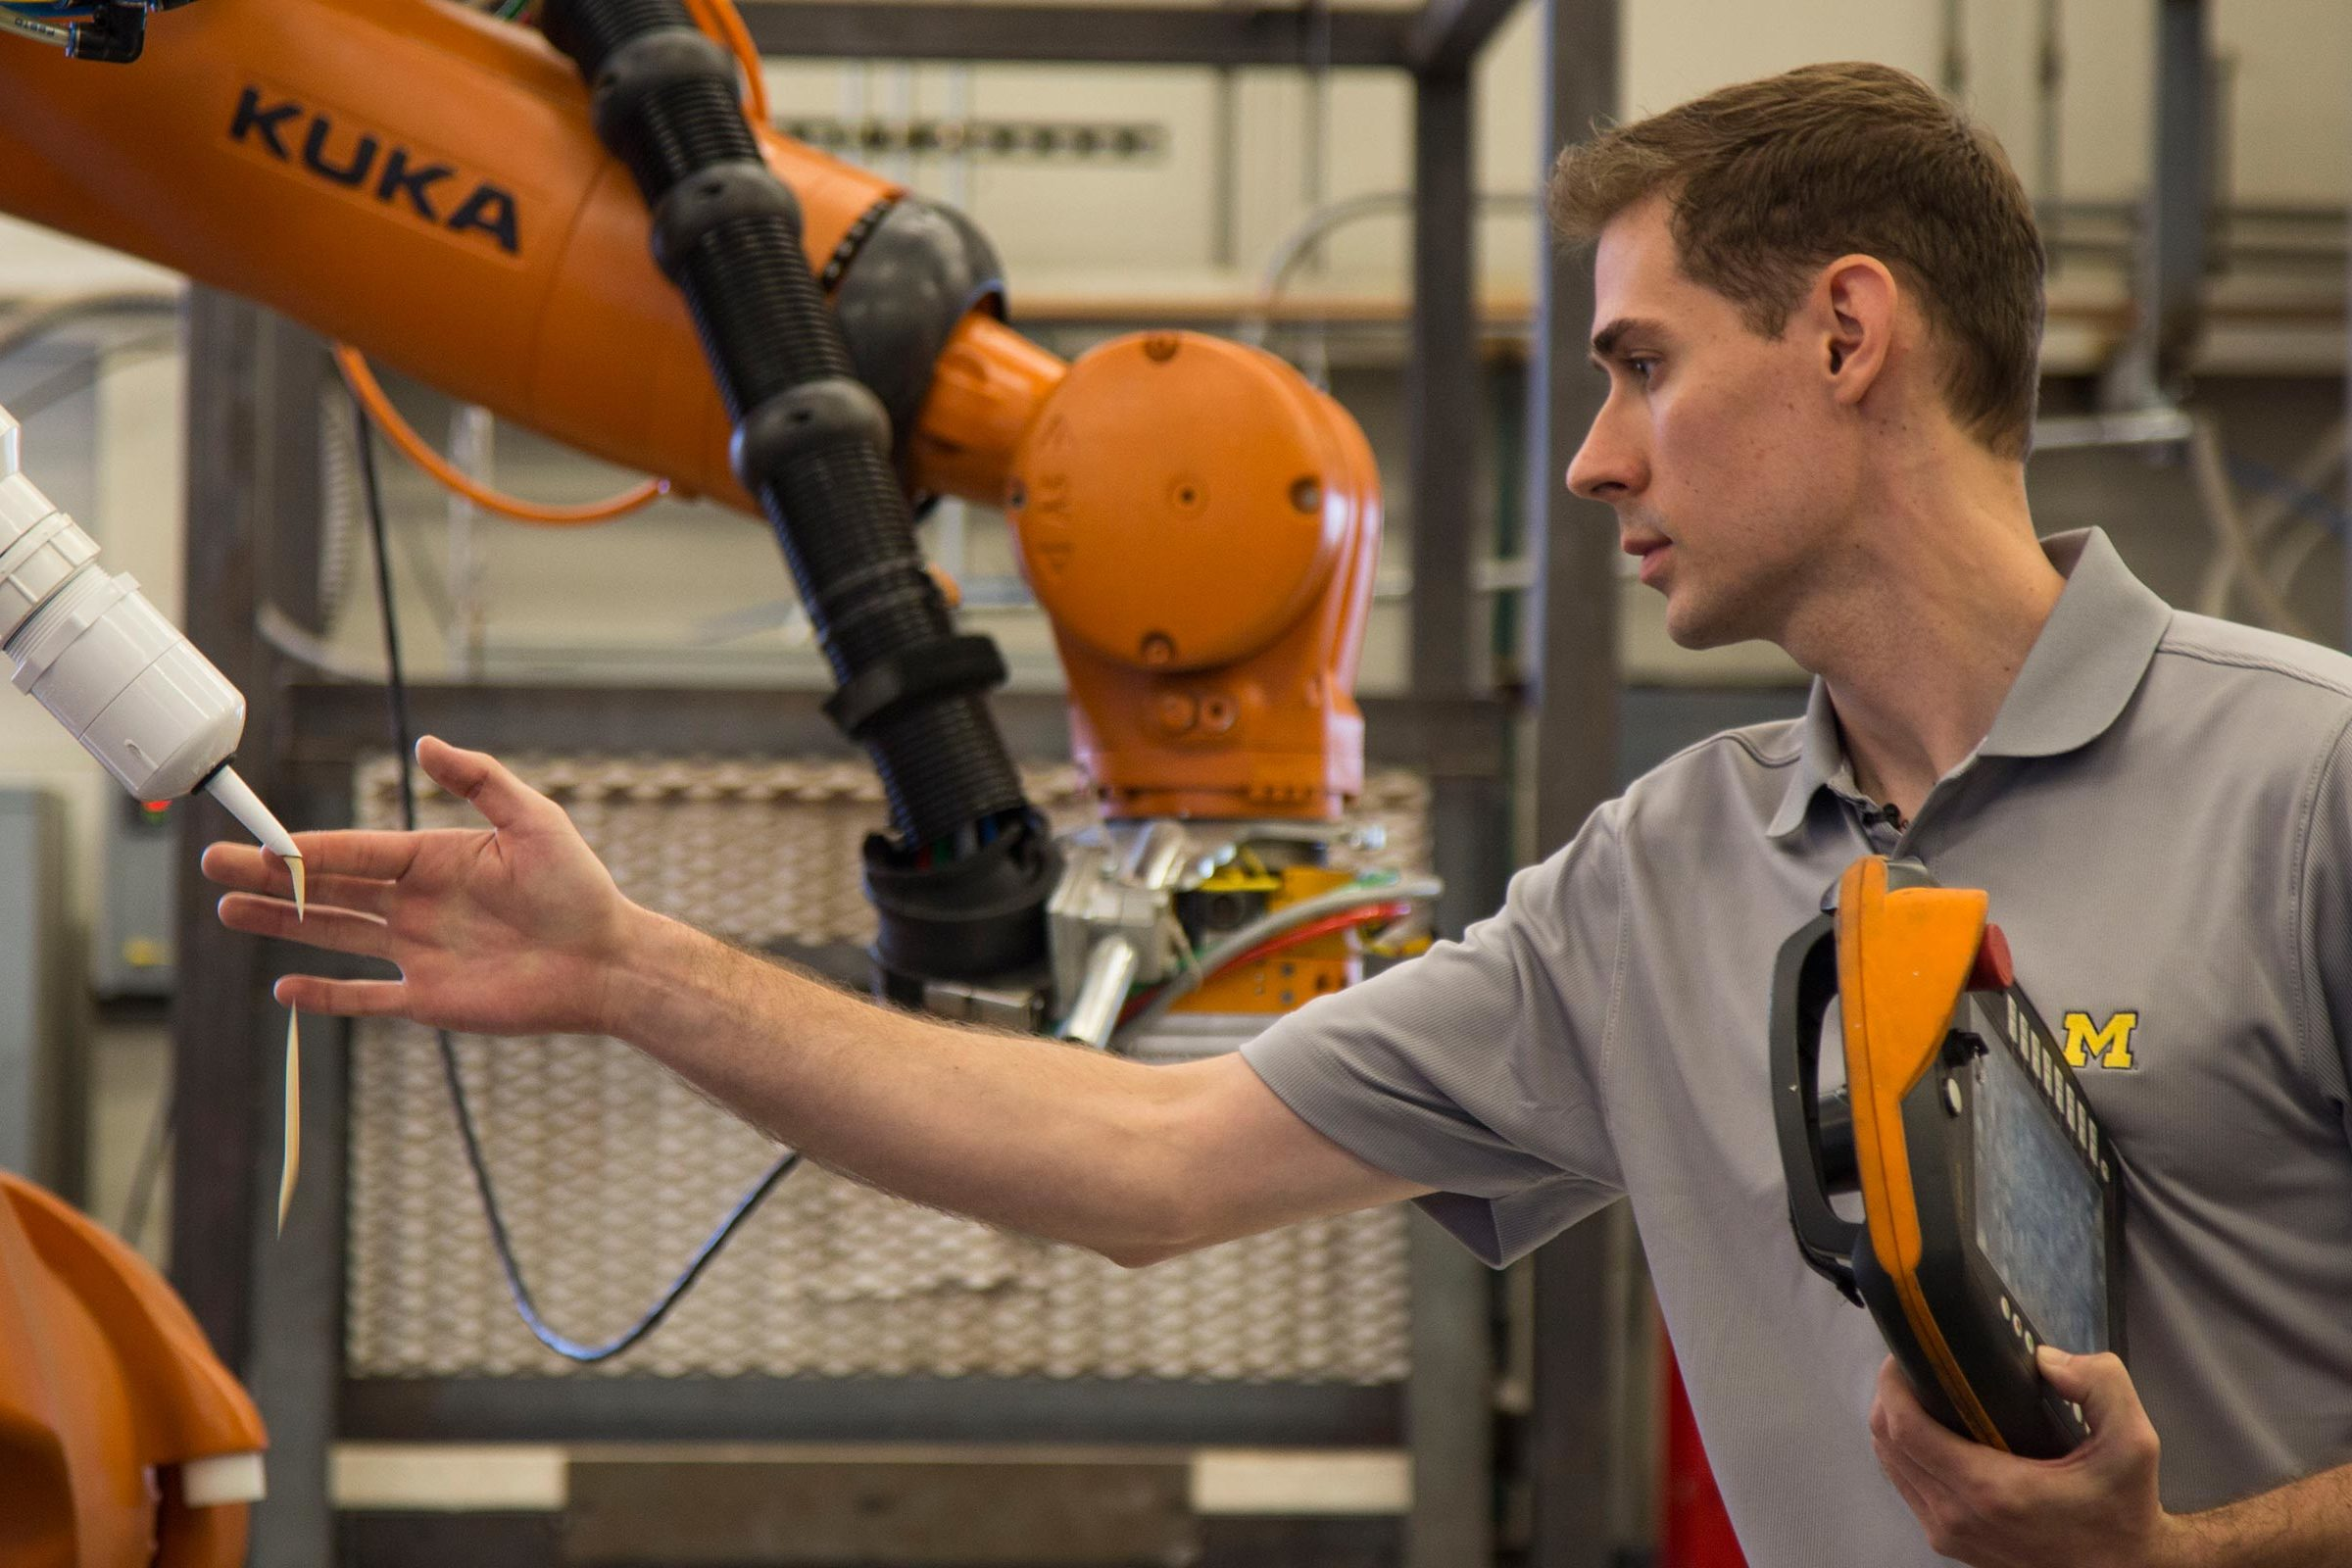 Kurt Lundeen tests out construction robot